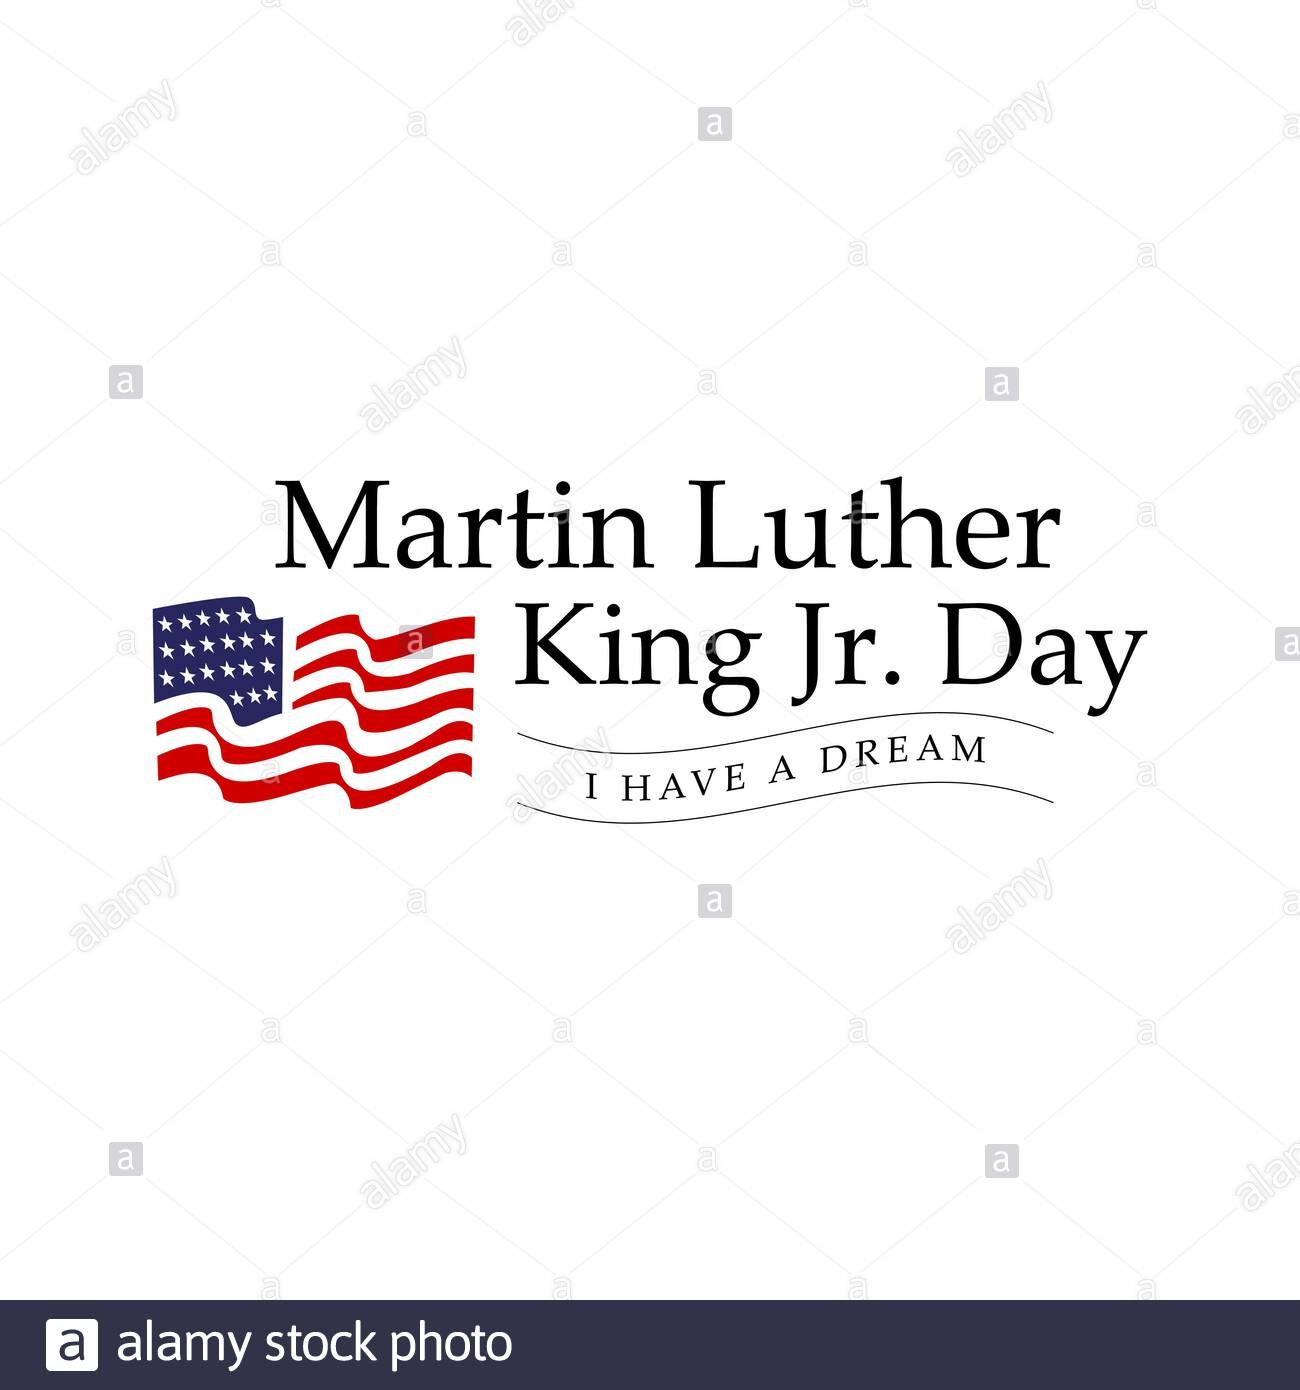 10+ Free Clipart For Martin Luther King Jr Day